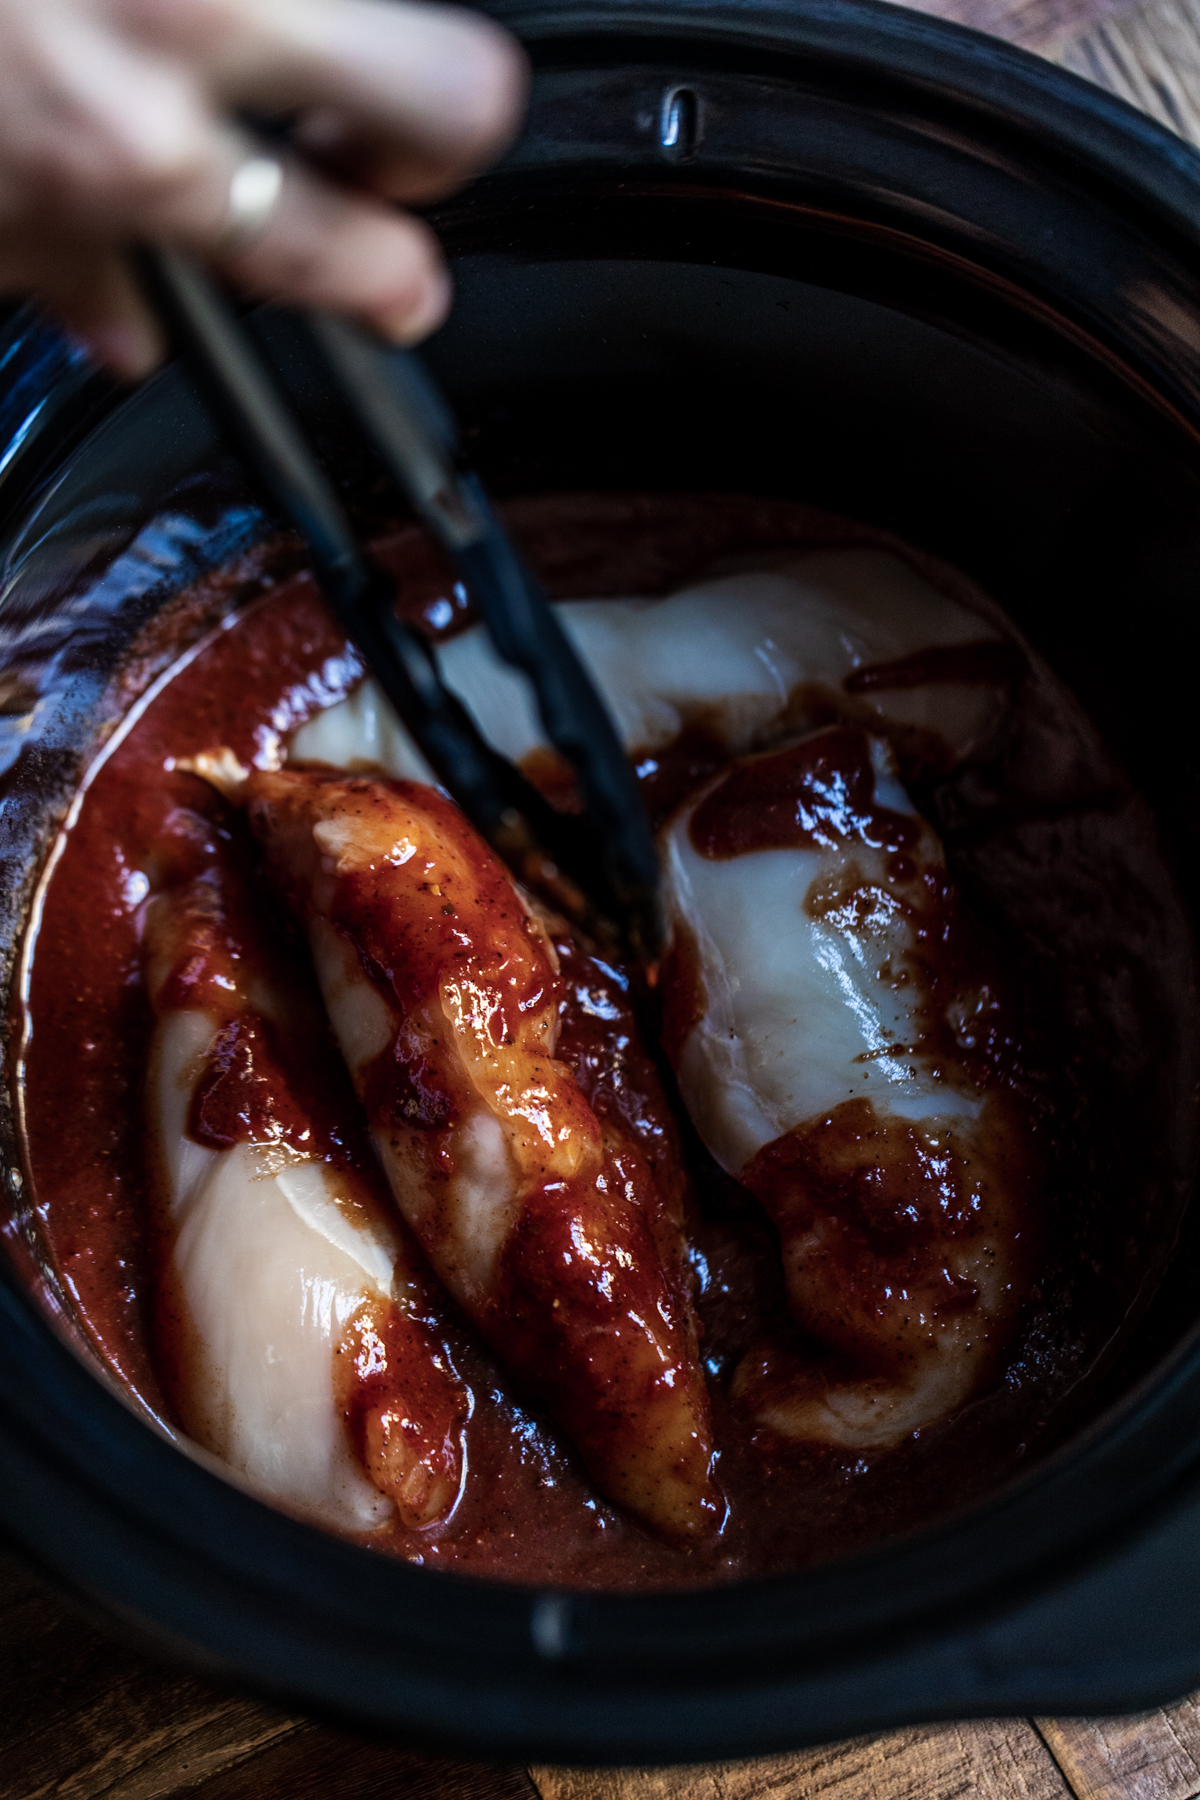 Chicken breasts being put into the chipotle sauce in a slow cooker with tongs